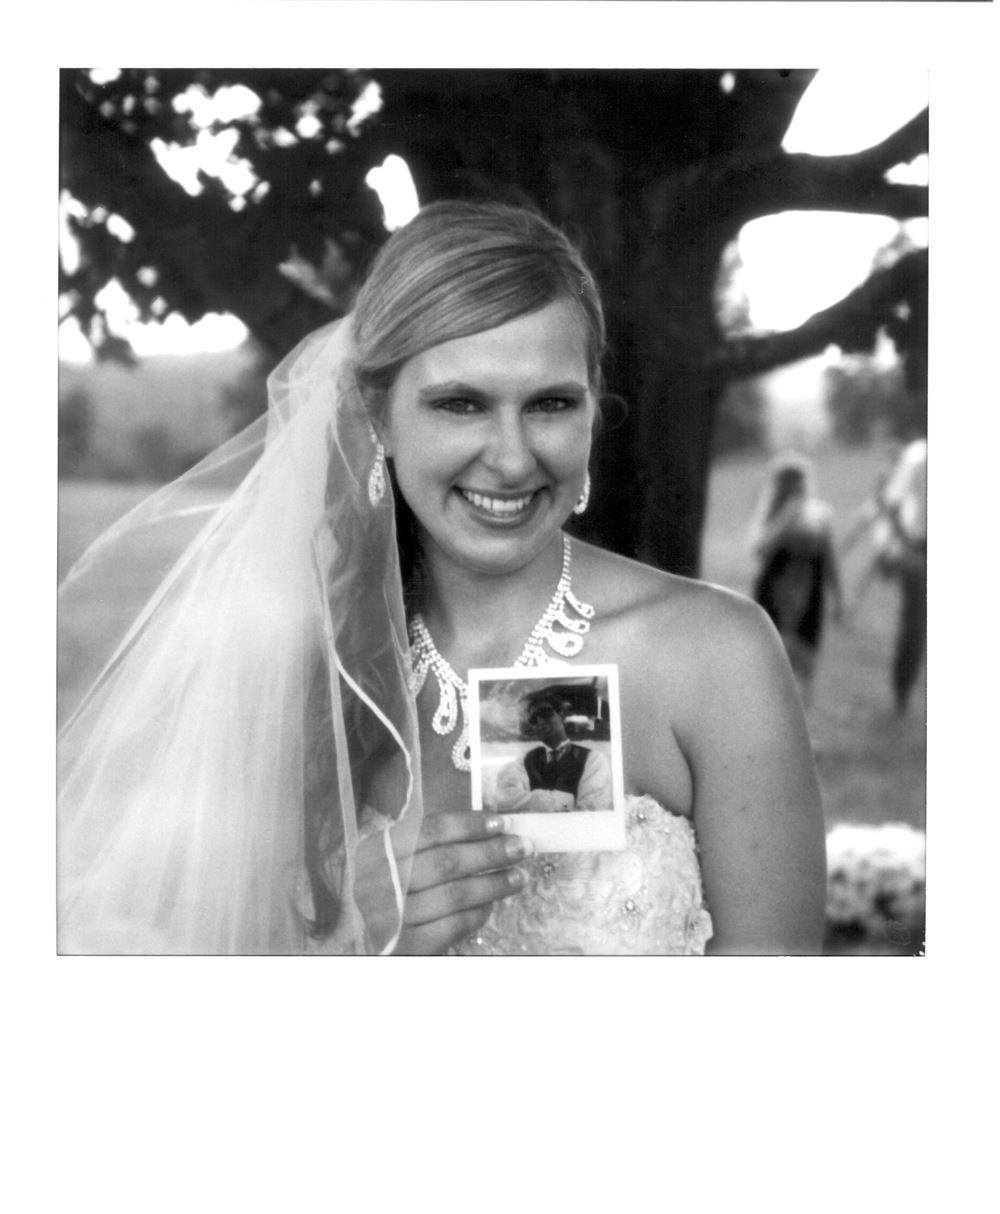 Amy and her Polaroid